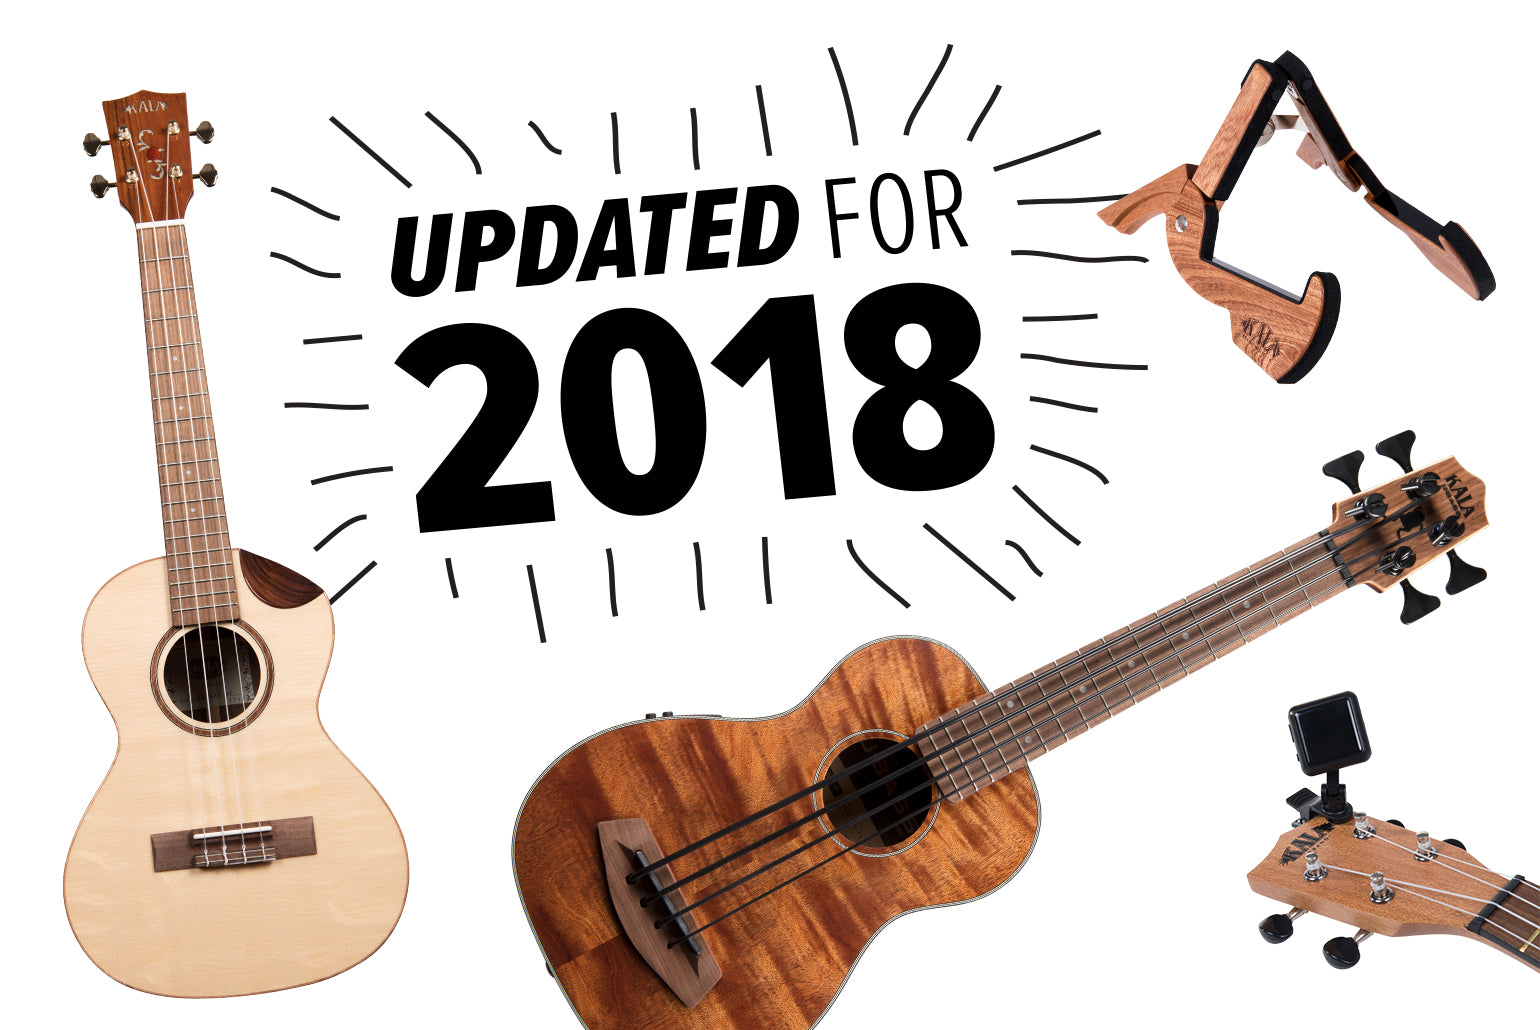 Kala 2018 Product Updates and New Accessories Spread